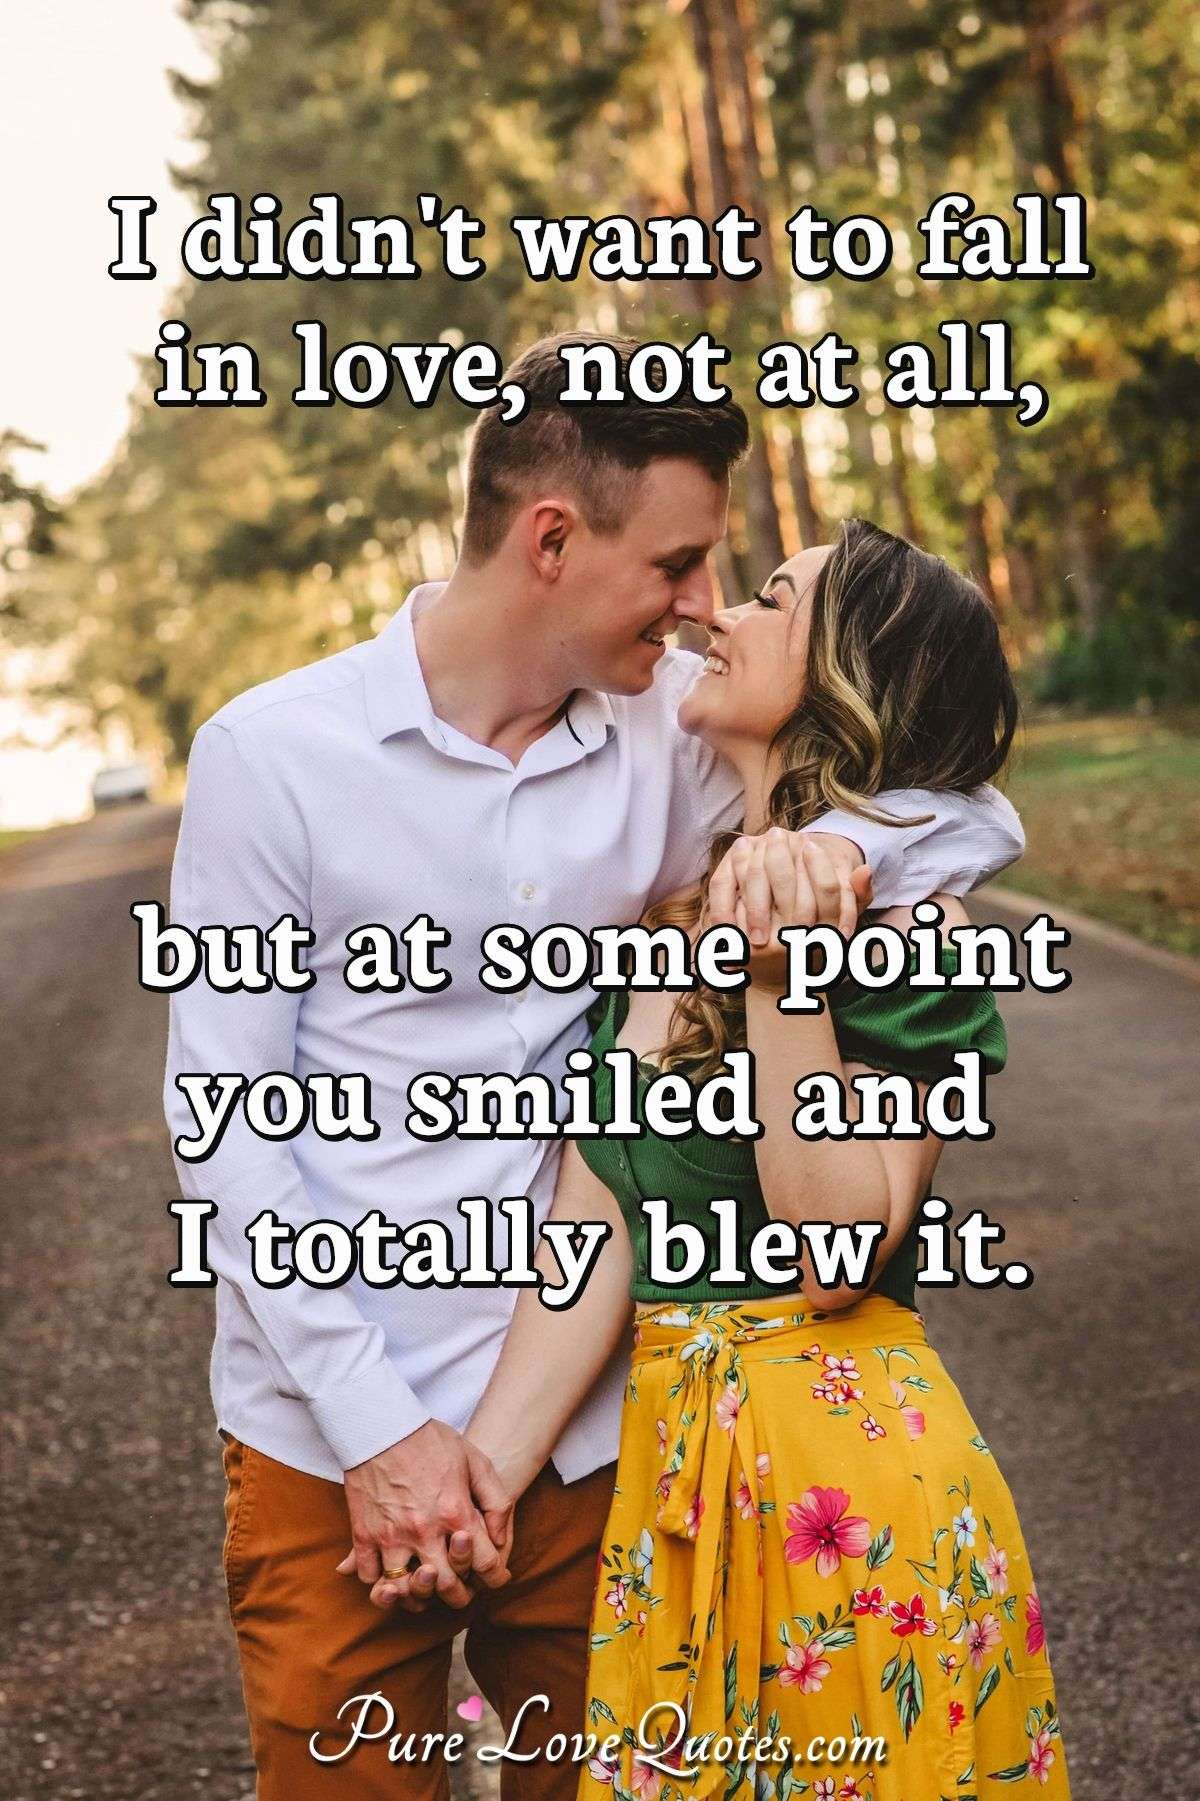 I didn't want to fall in love, not at all, but at some point you smiled and I totally blew it. - Anonymous